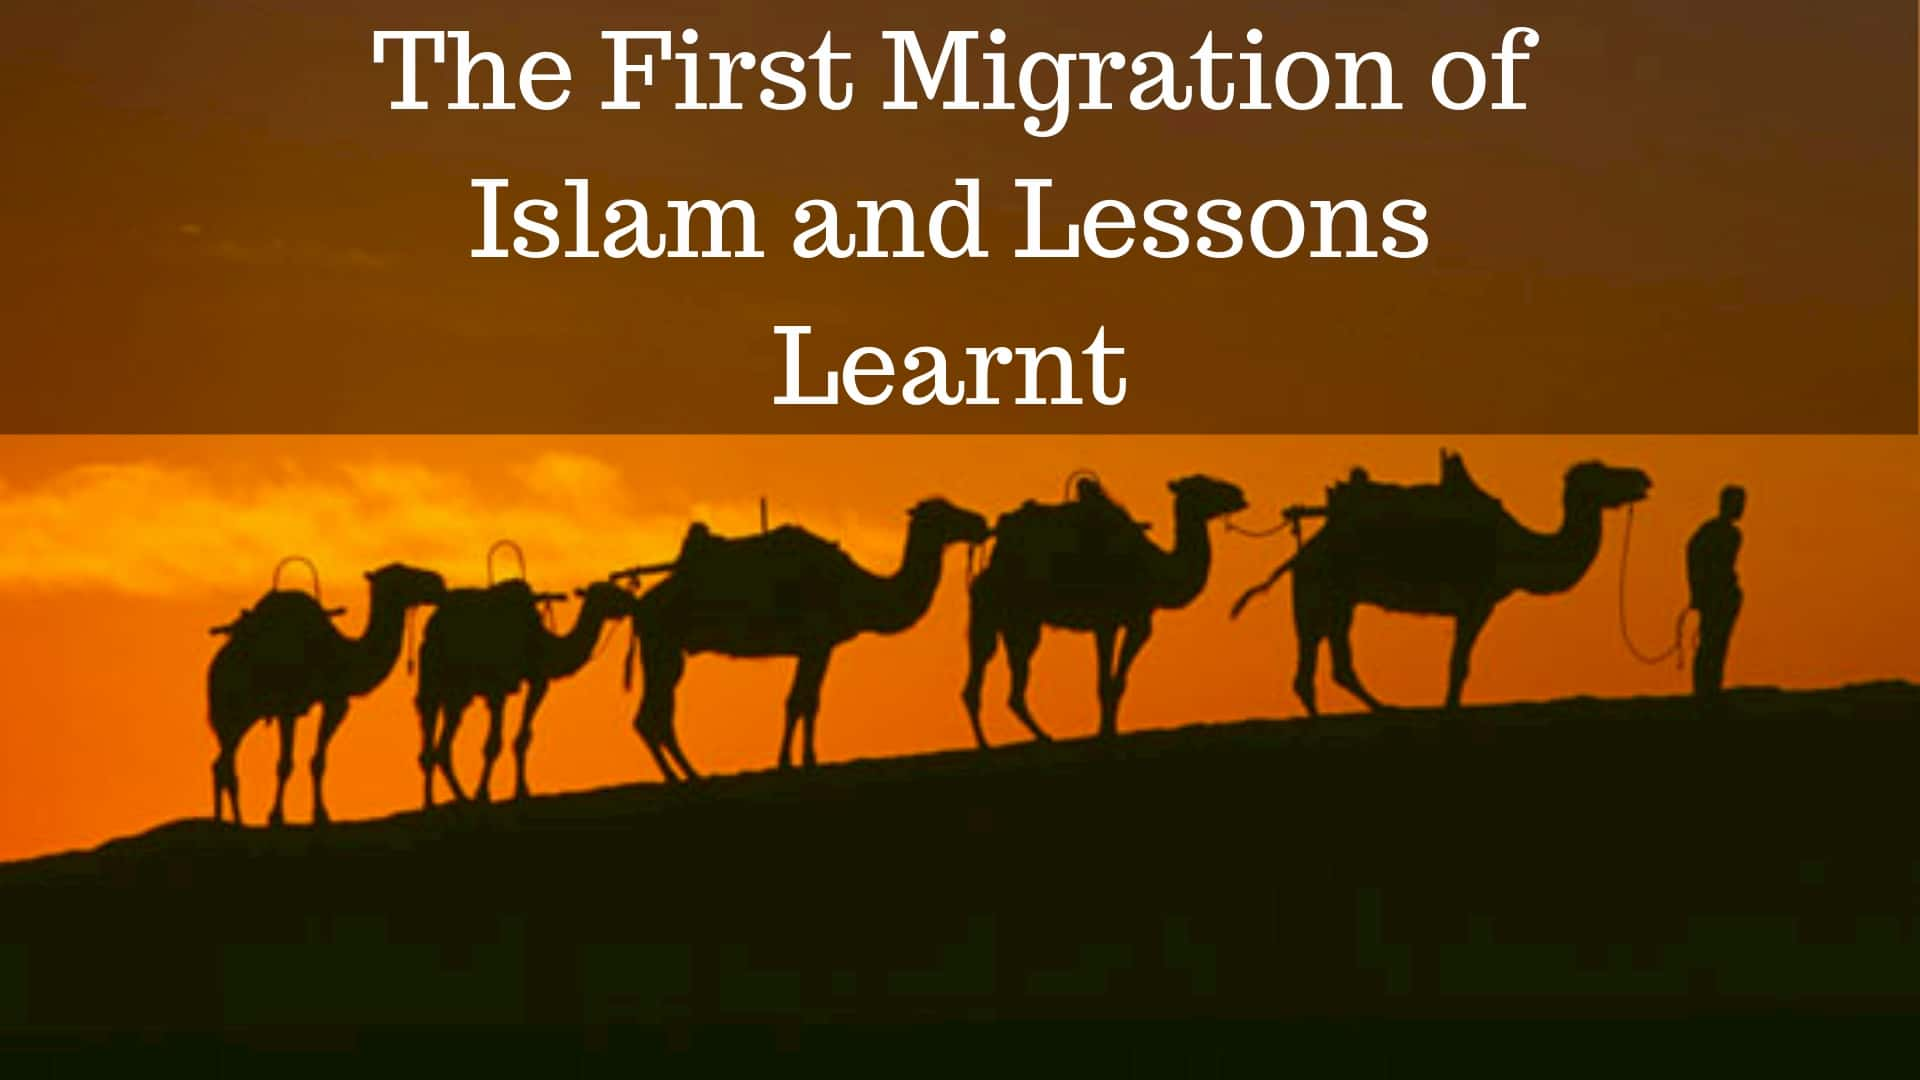 The First Migration of Islam and Lessons Learnt